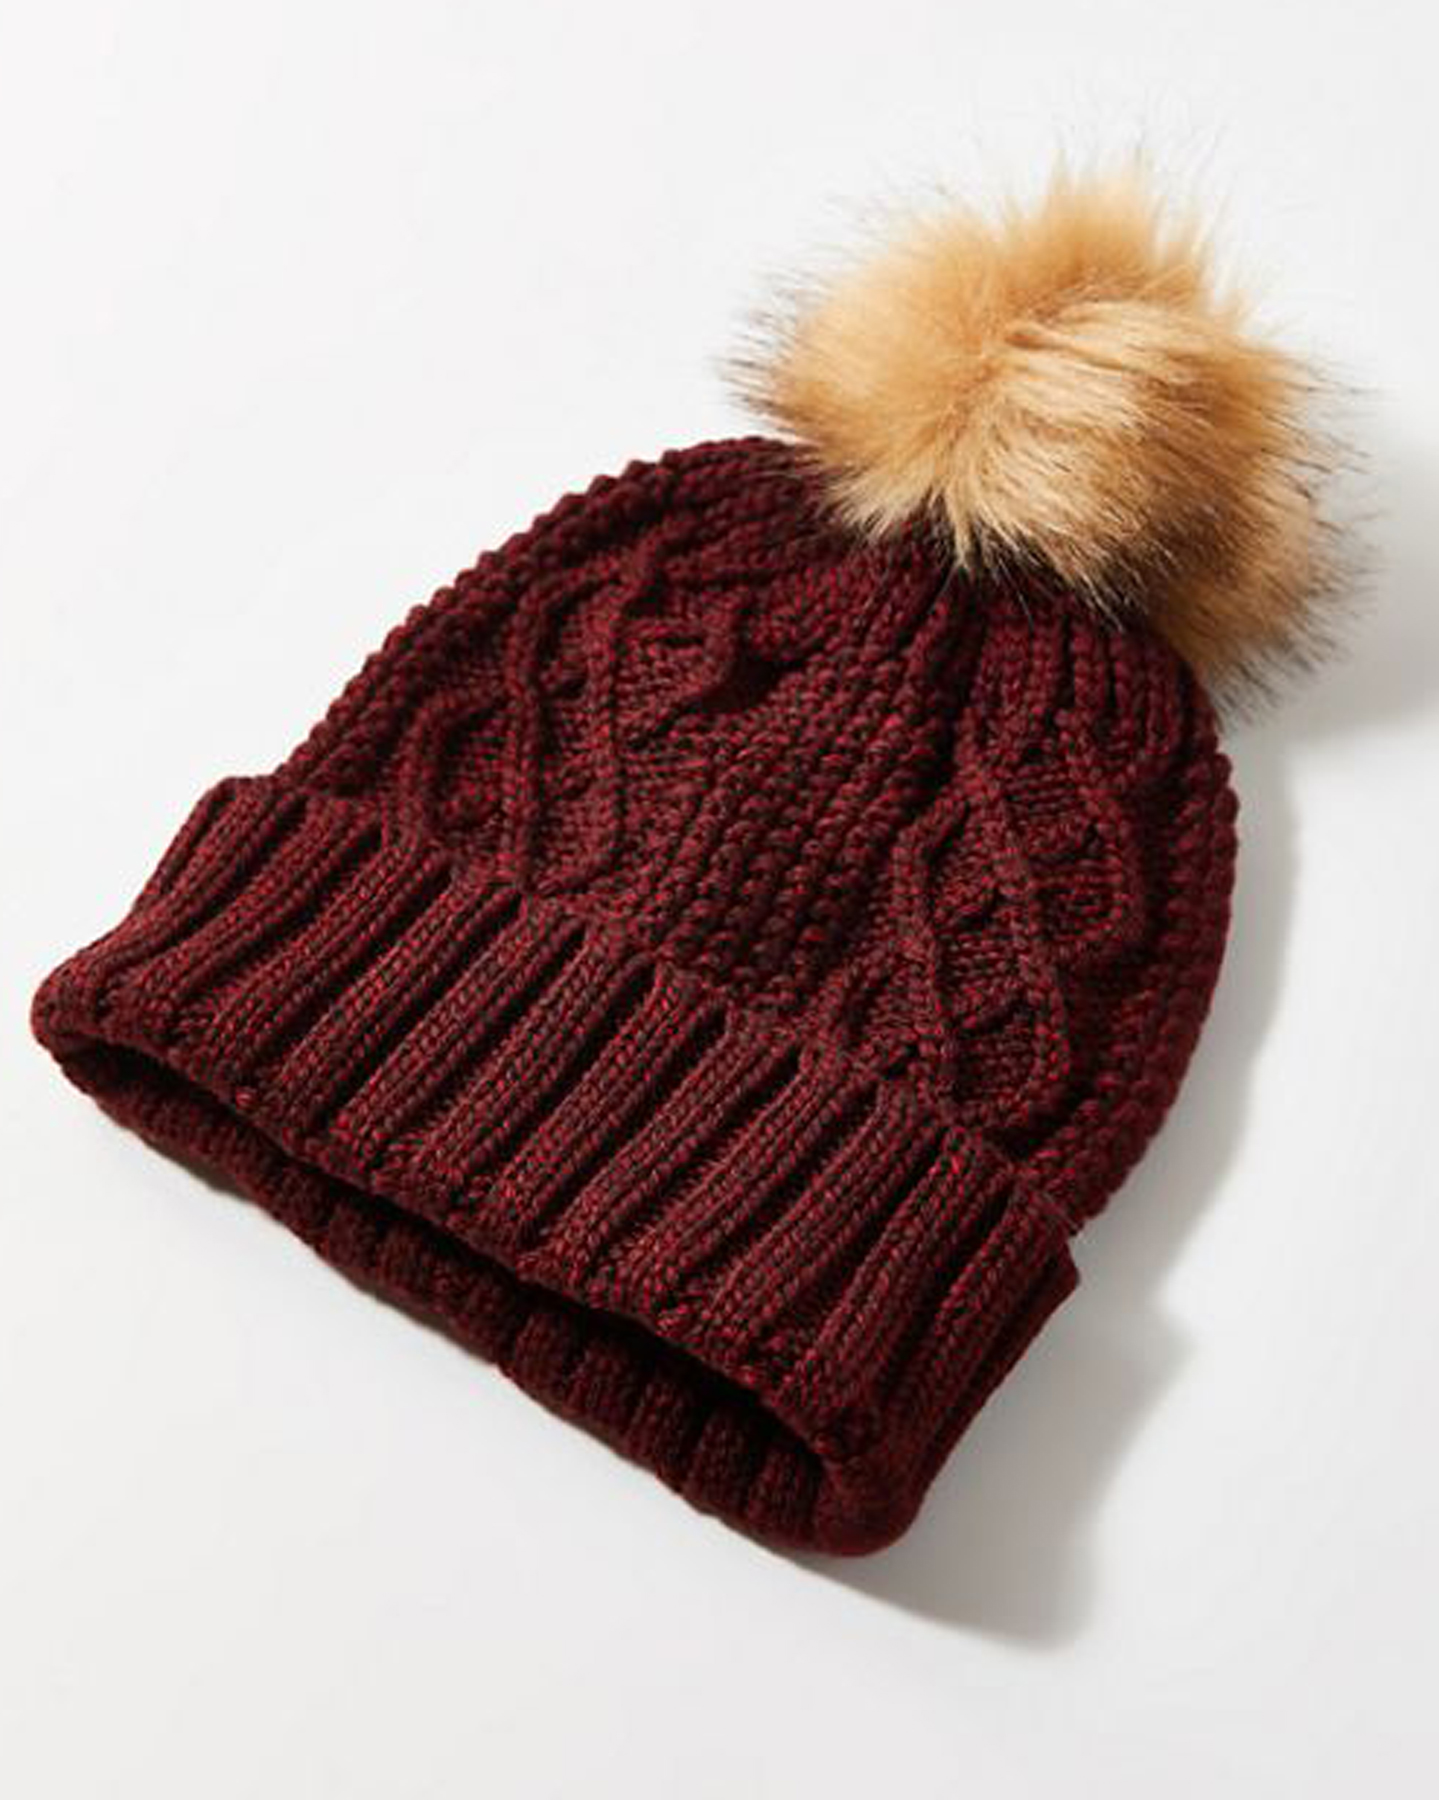 Cheap Christmas Gifts: Maroon cableknit pompom beanie from Urban Outfitters